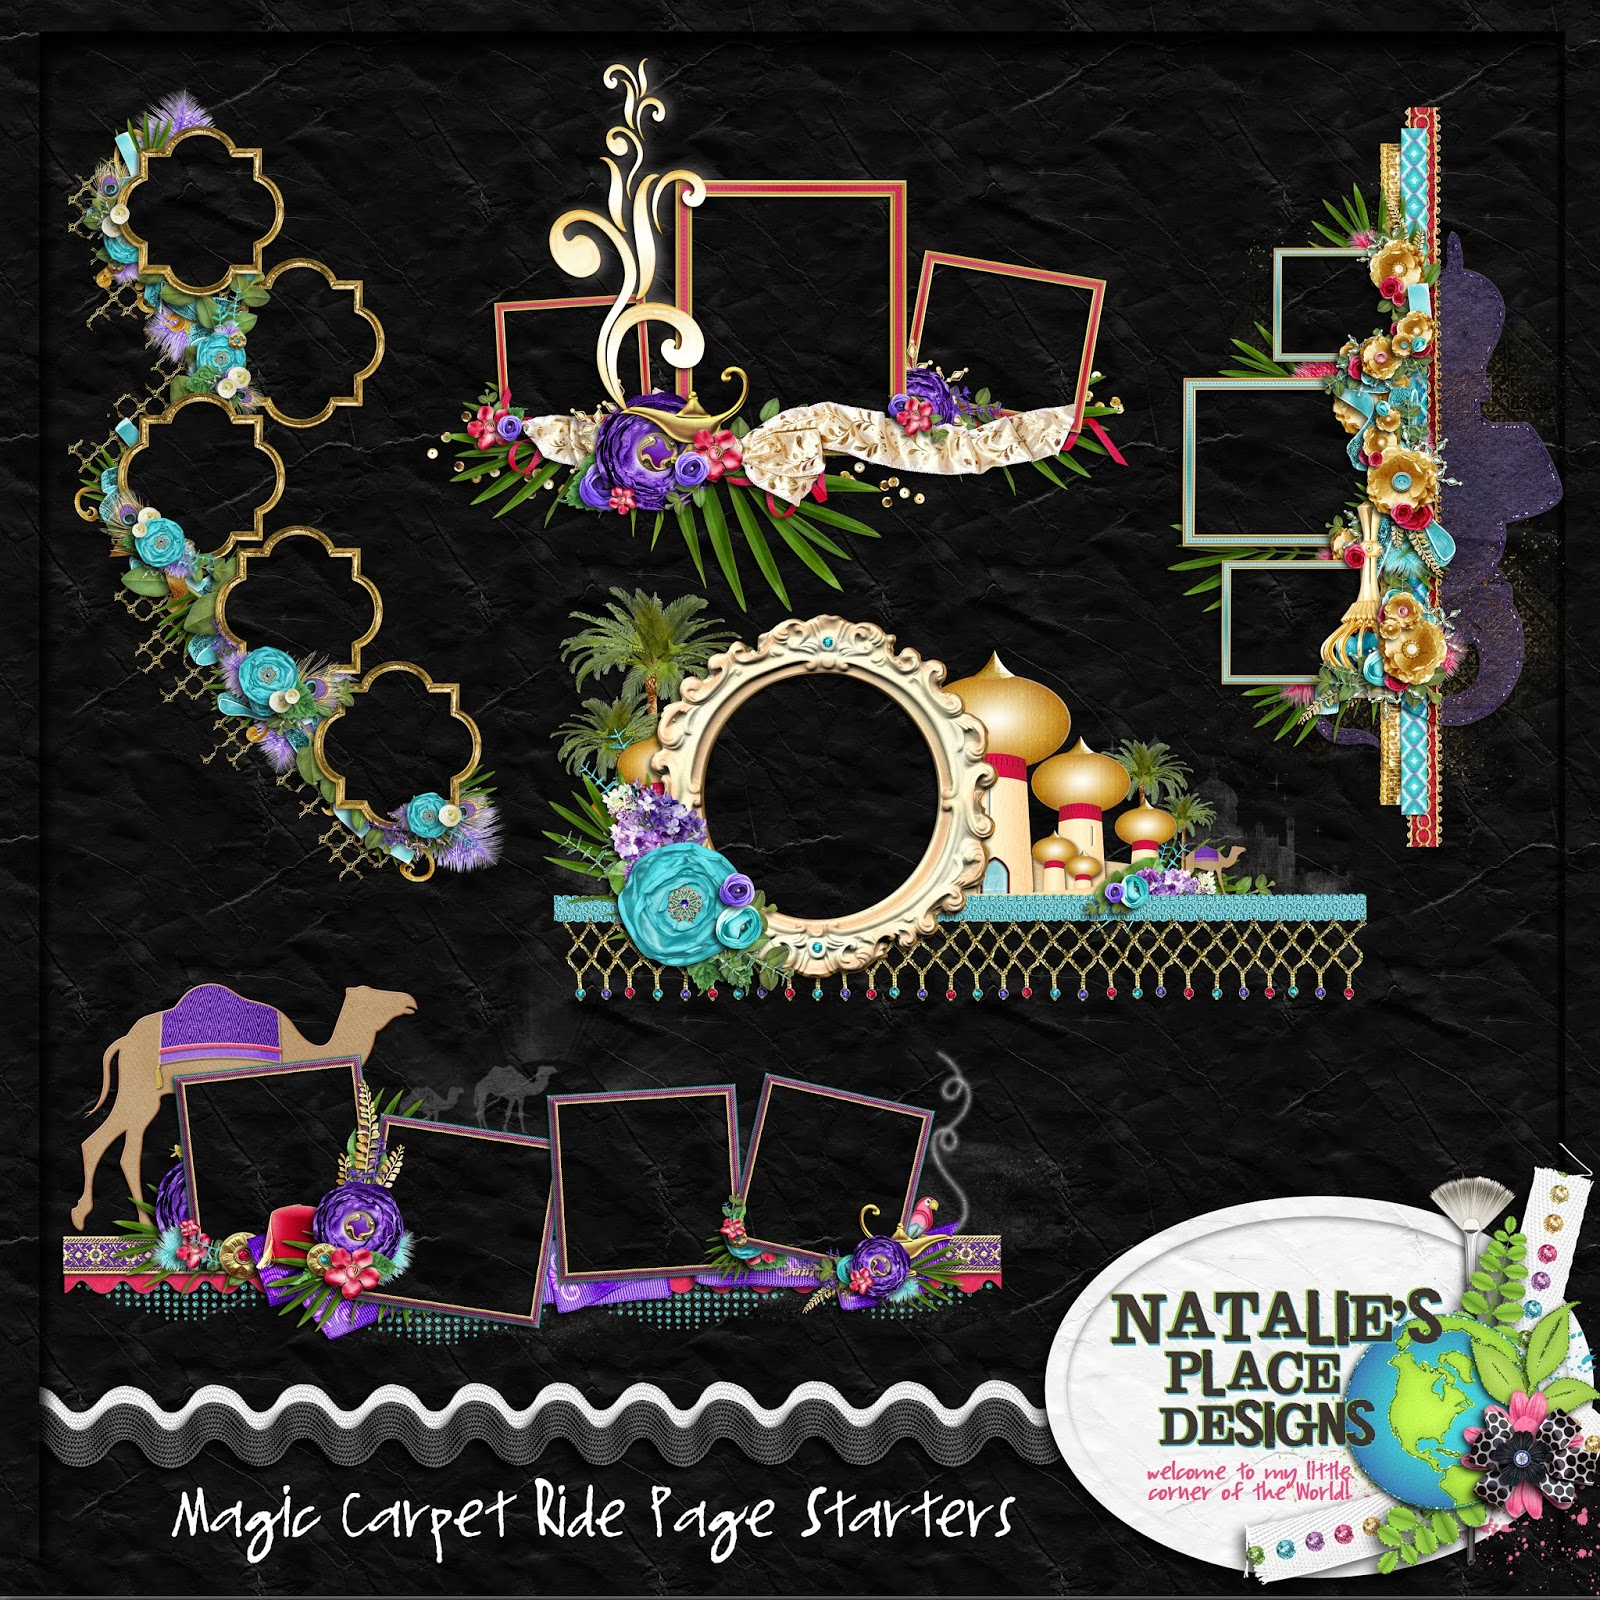 http://www.nataliesplacedesigns.com/store/p480/Magic_Carpet_Ride_Page_Starters.html